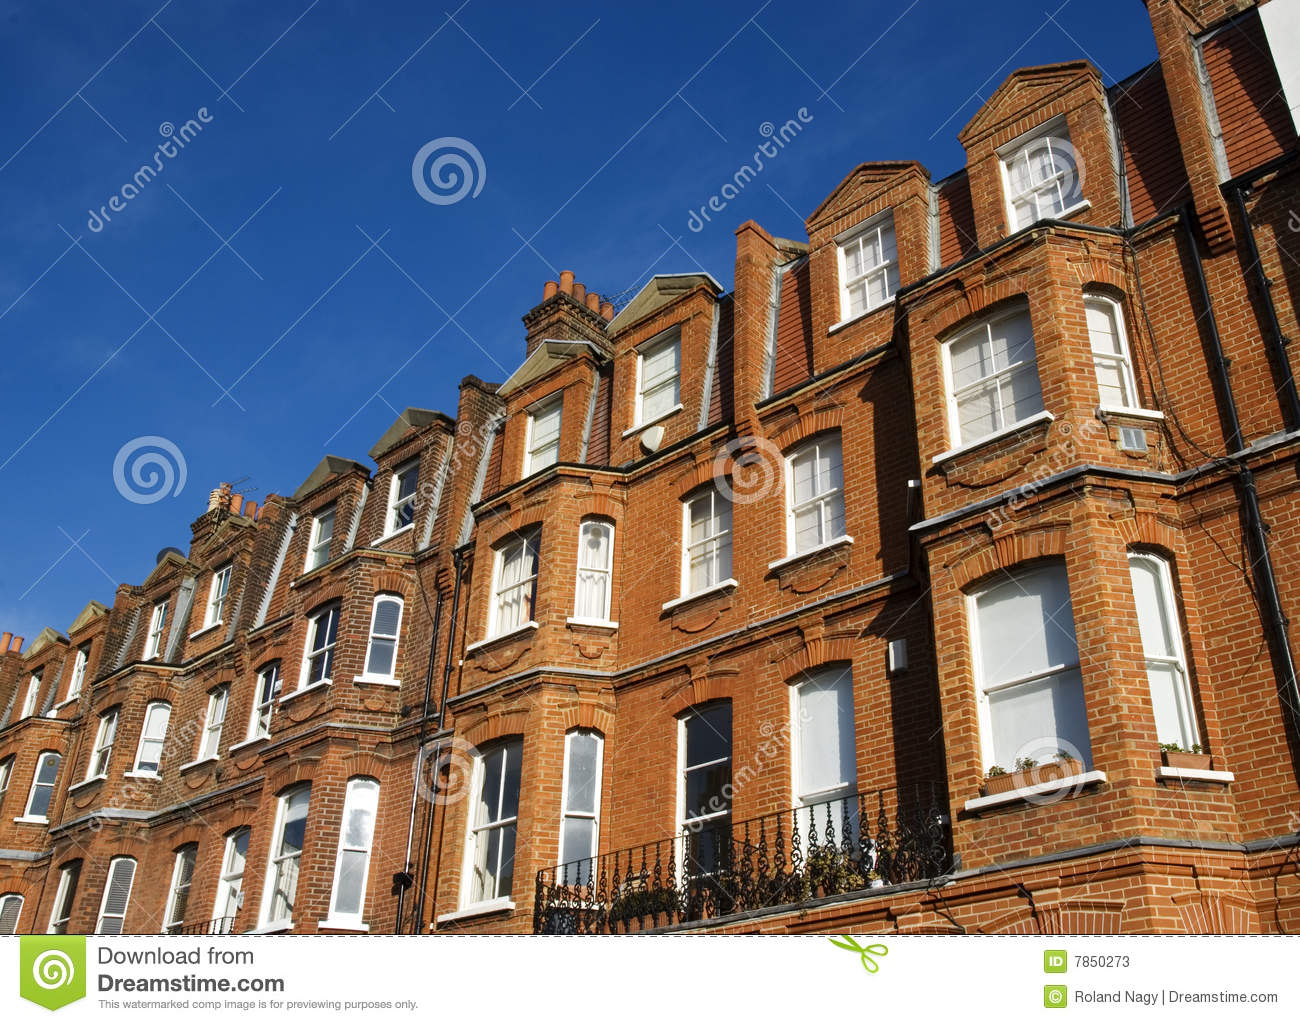 an analysis of the description of the tall brick building Today's tall buildings are becoming more and more slender, leading to the possibility of more sway in comparison with earlier high rise buildings improving the structural systems of tall buildings can control their dynamic response.